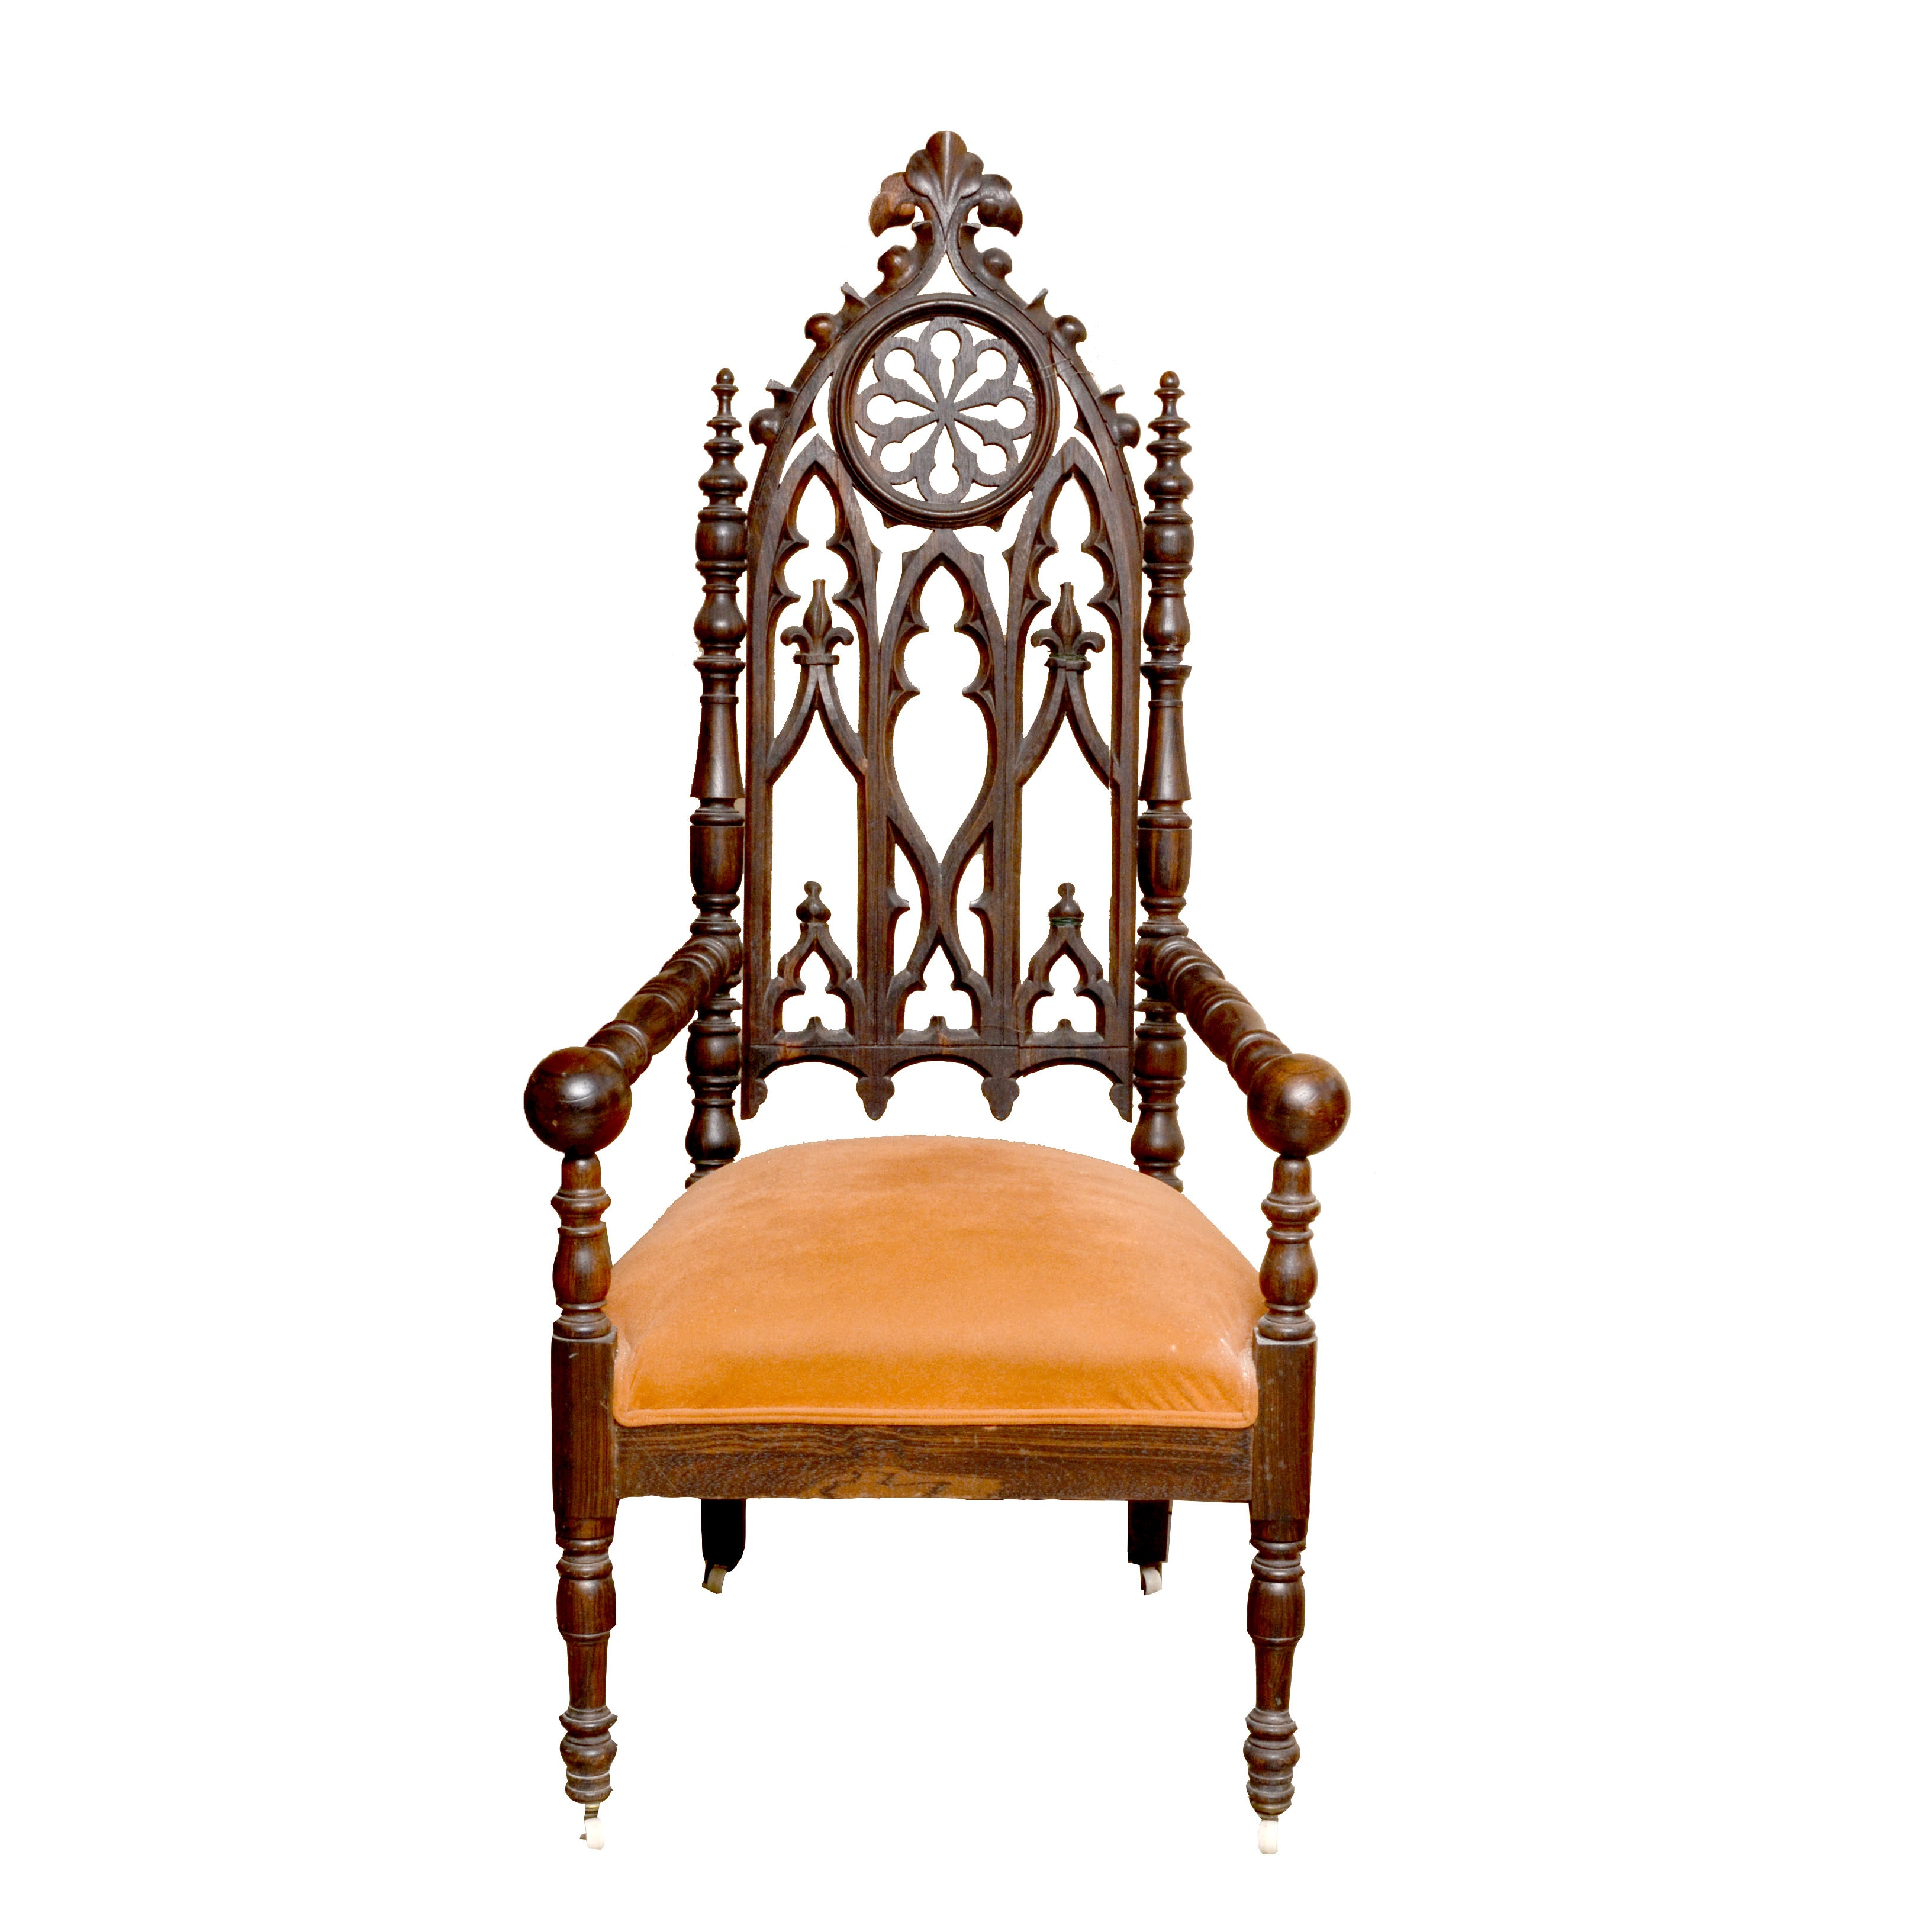 19th Century Gothic Revival Arm Chair with Upholstered Seat